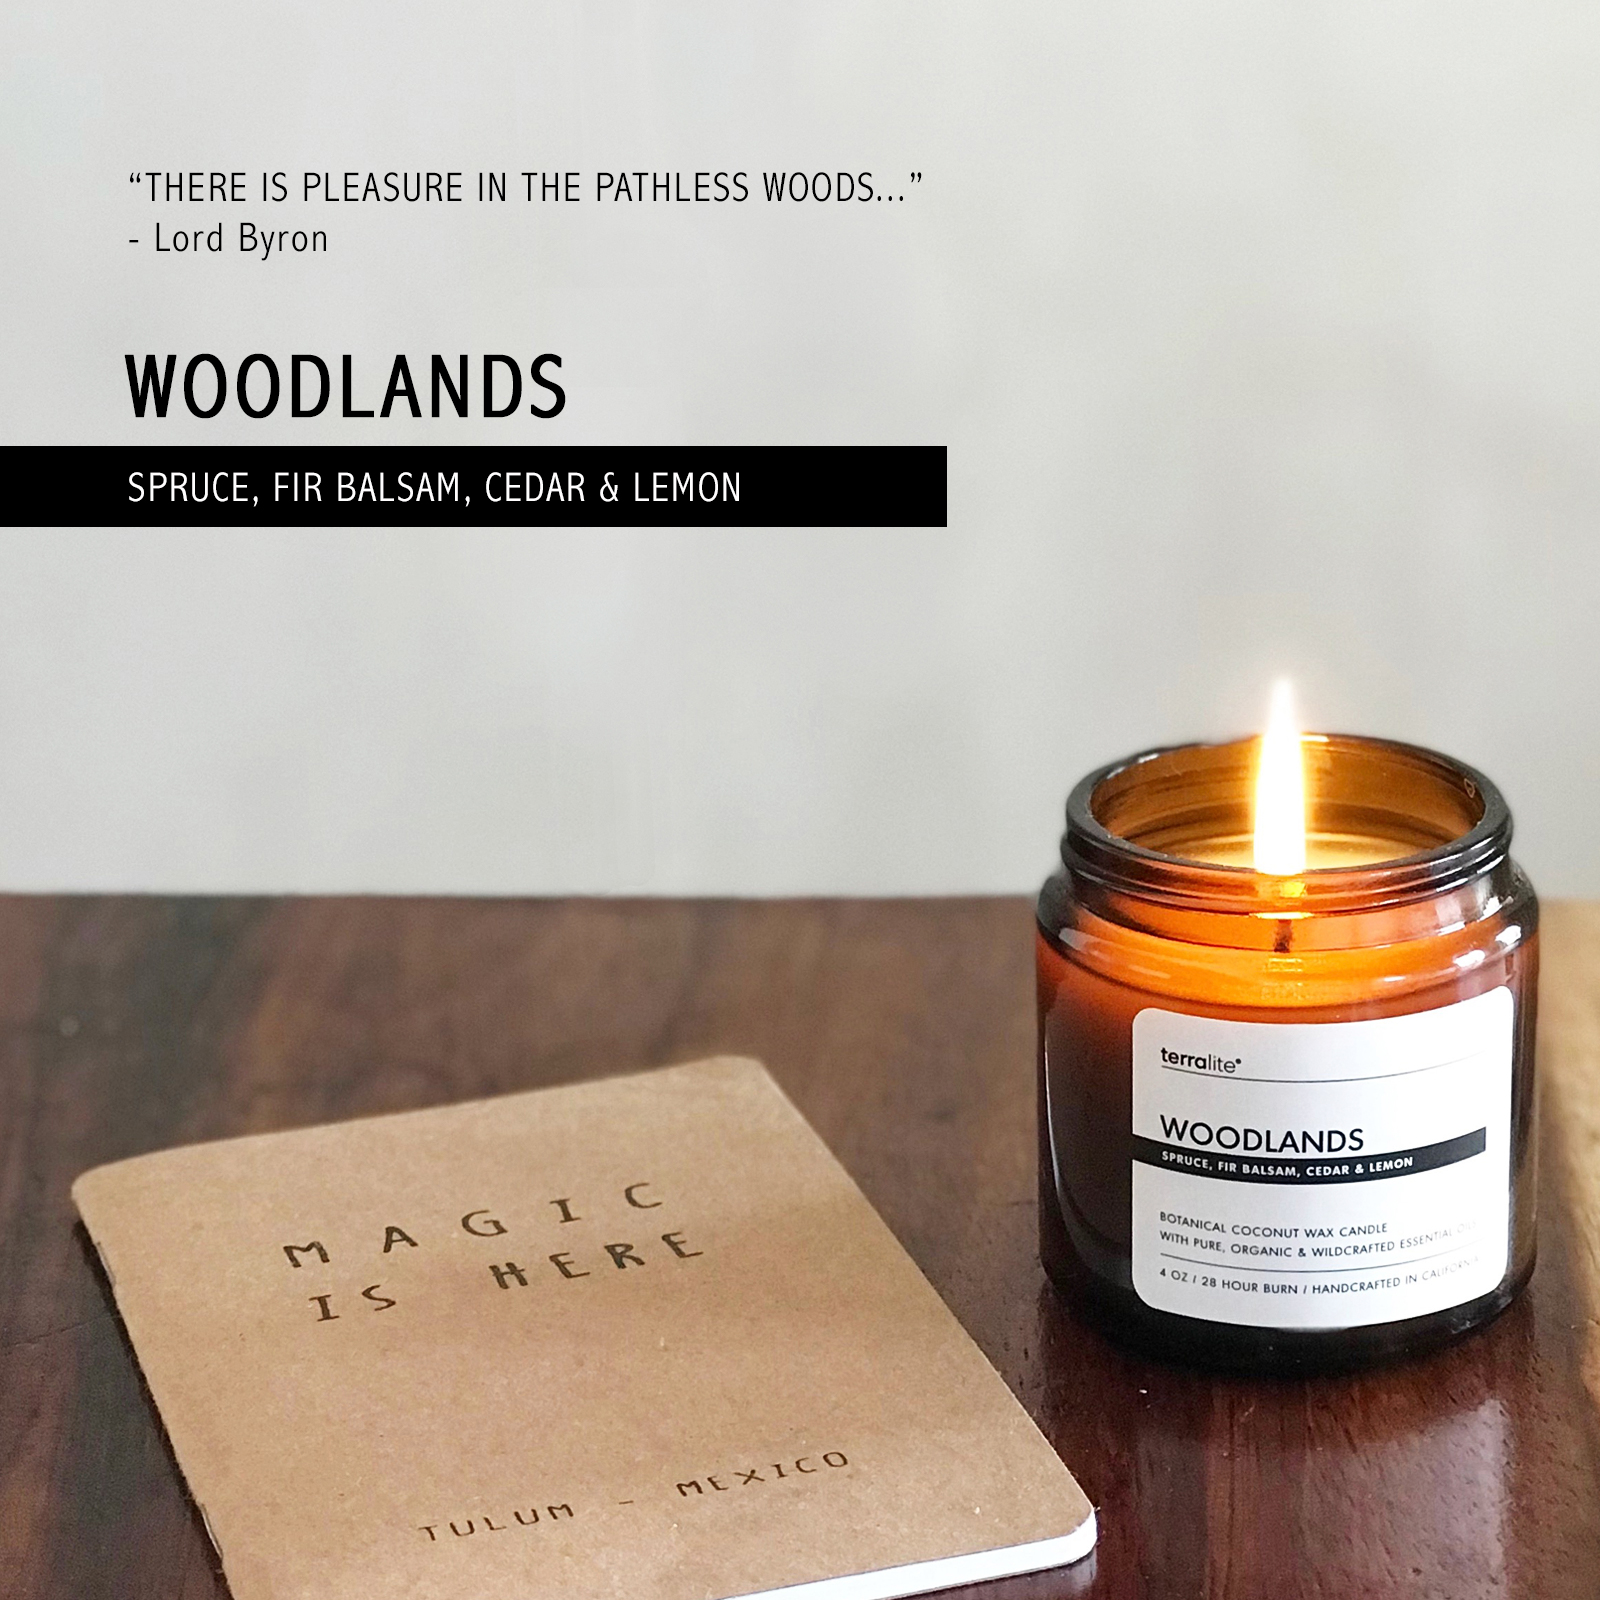 Terralite | Botanical Candles, Bath & Body Products